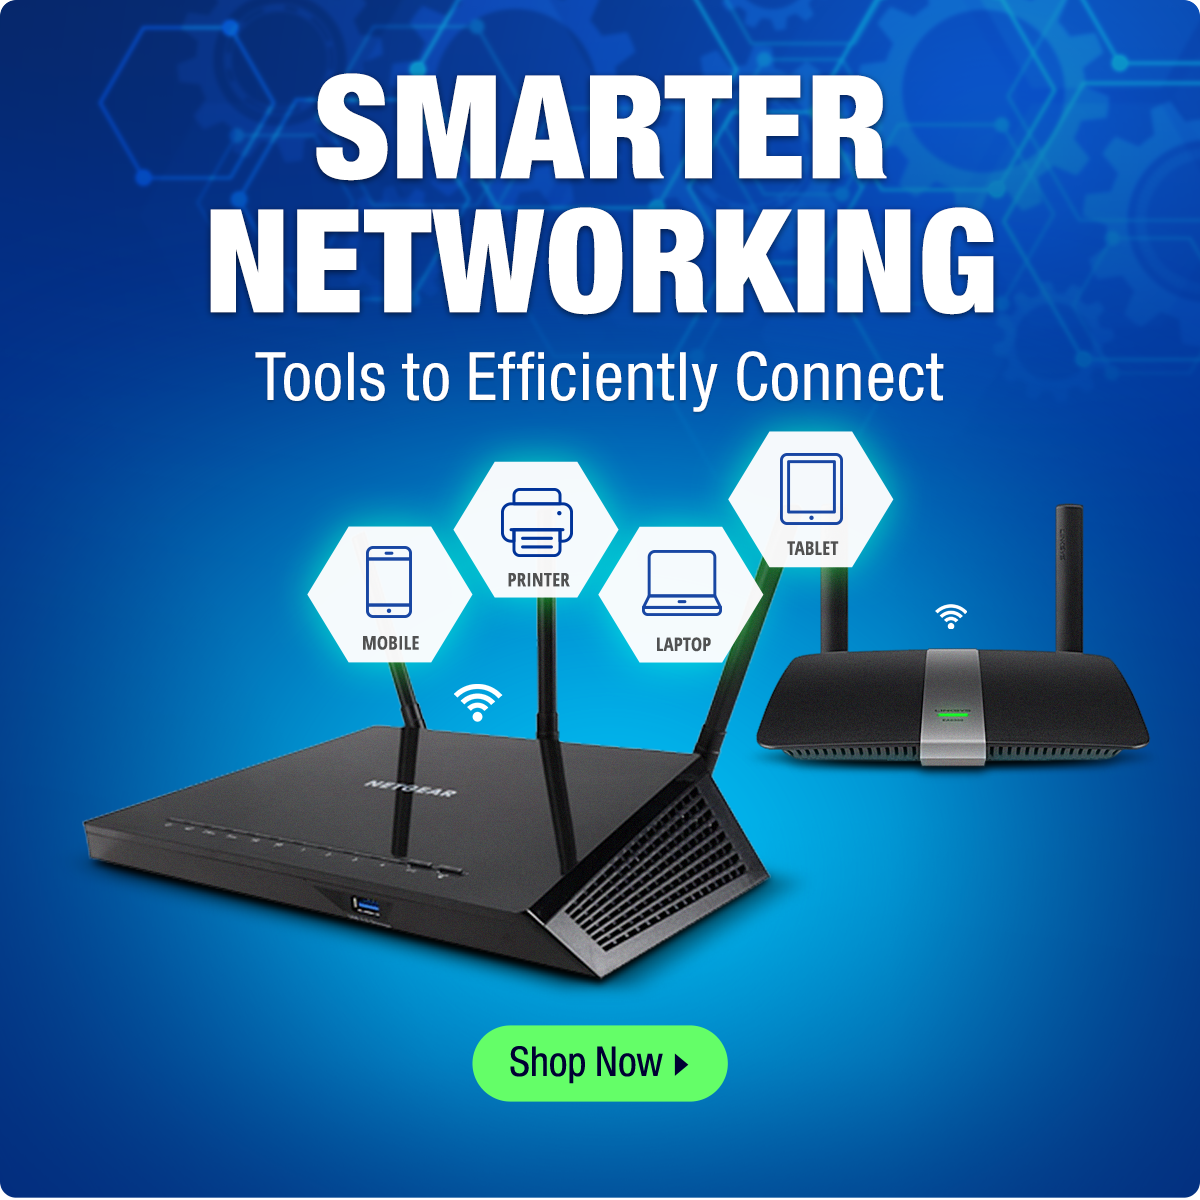 Smarter Networking | Tools to Efficiently Connect